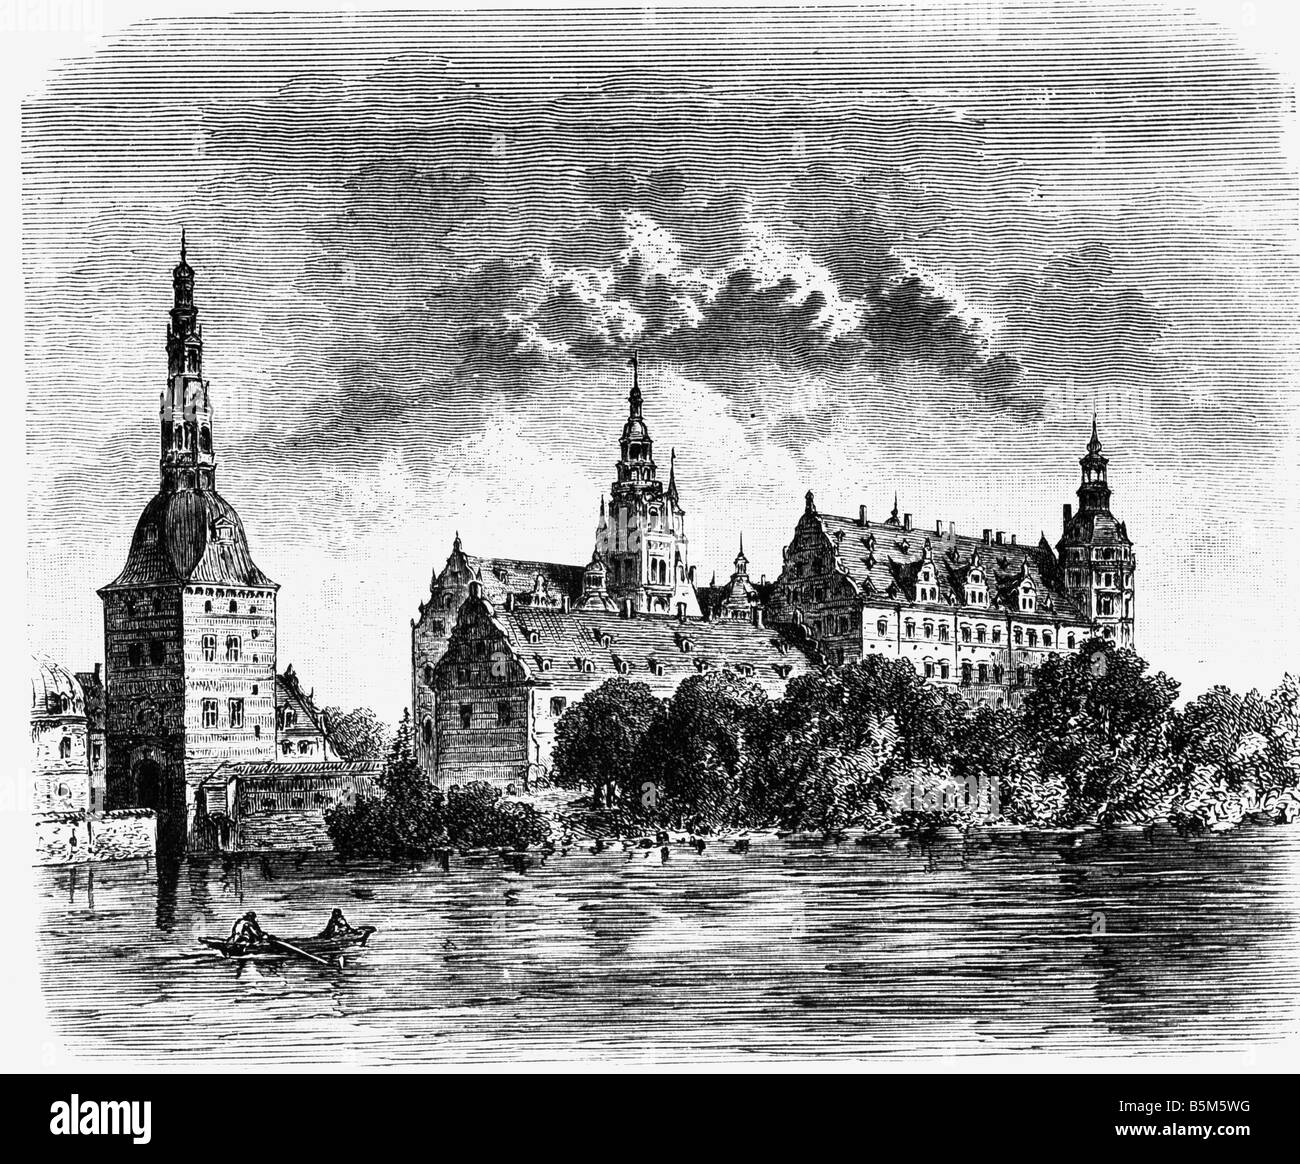 architecture, castles, Denmark, Frederiksborg Palace, exterior view in the 17th century, wood engraving, 19th century, - Stock Image